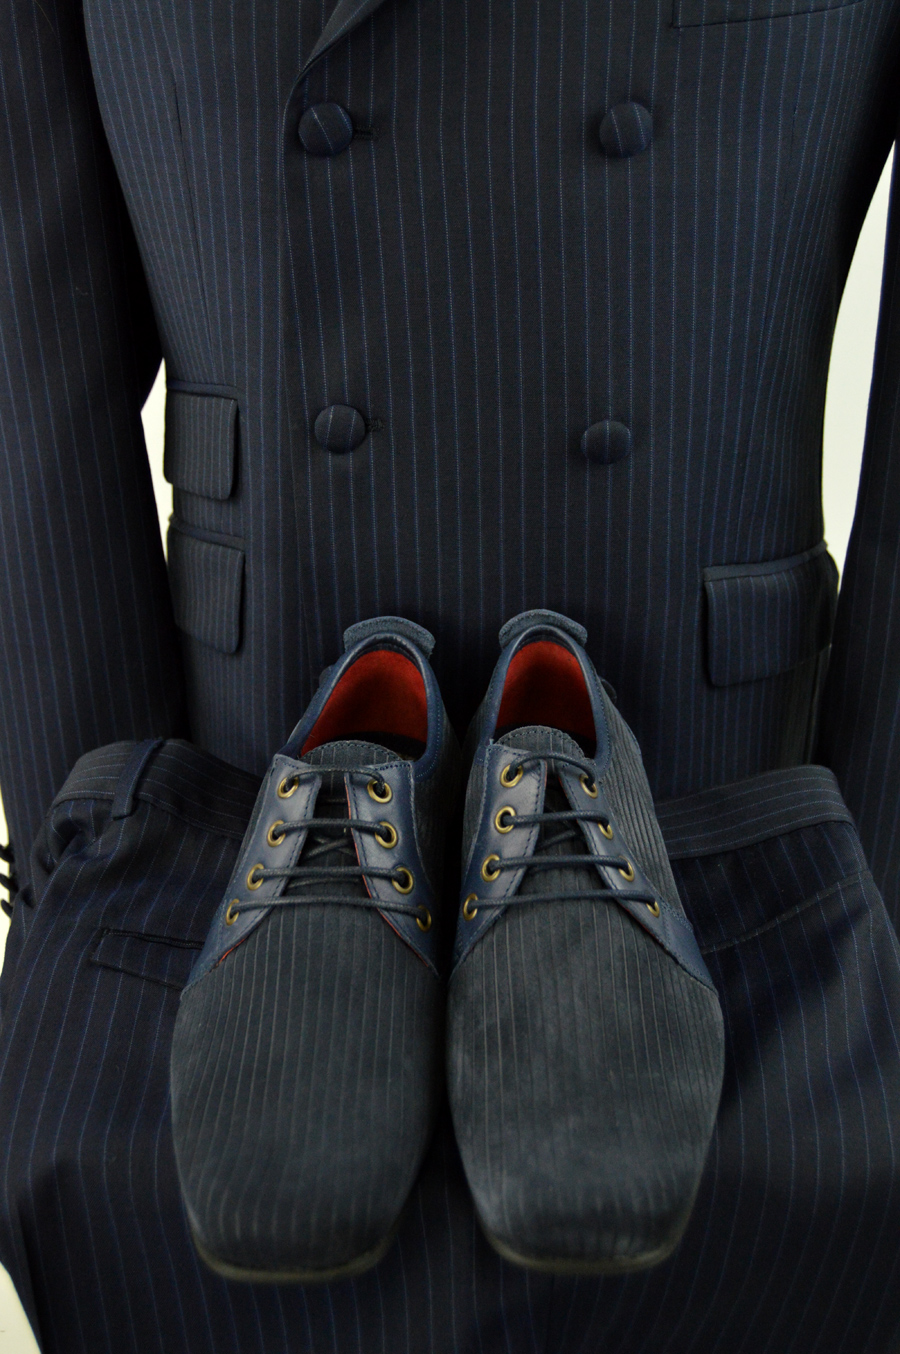 modshoes-suede-corded-shoes-rawlings-with-blue-striped-mod-suit-from-adaptor-clothing-02